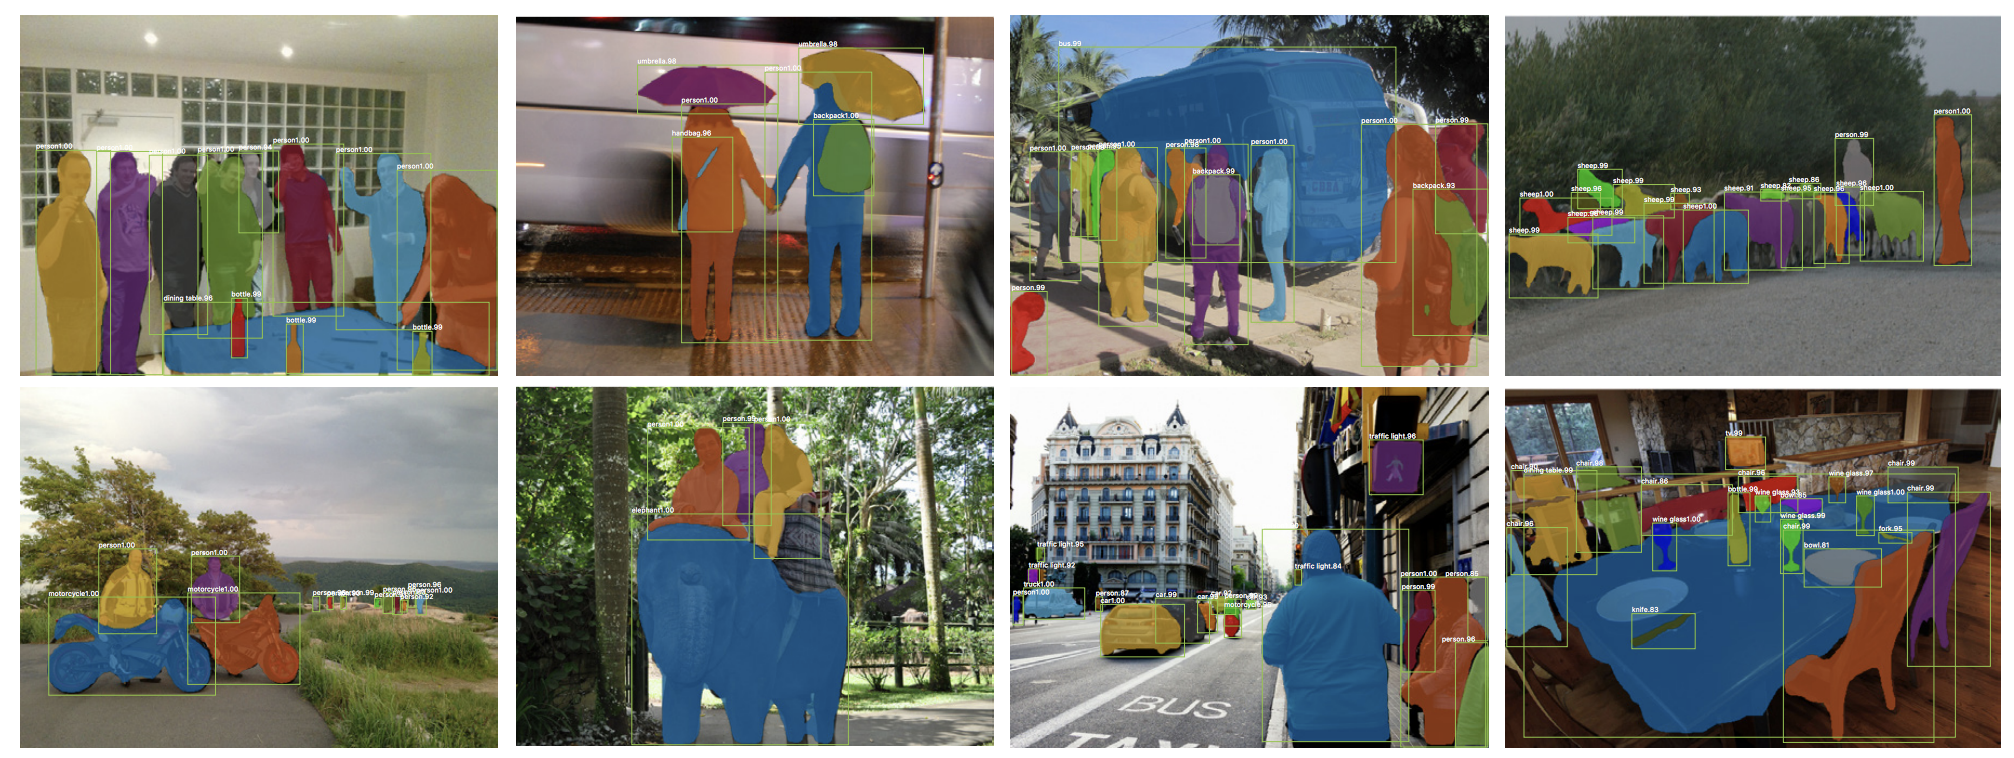 Example of Object Segmentation on the COCO Dataset